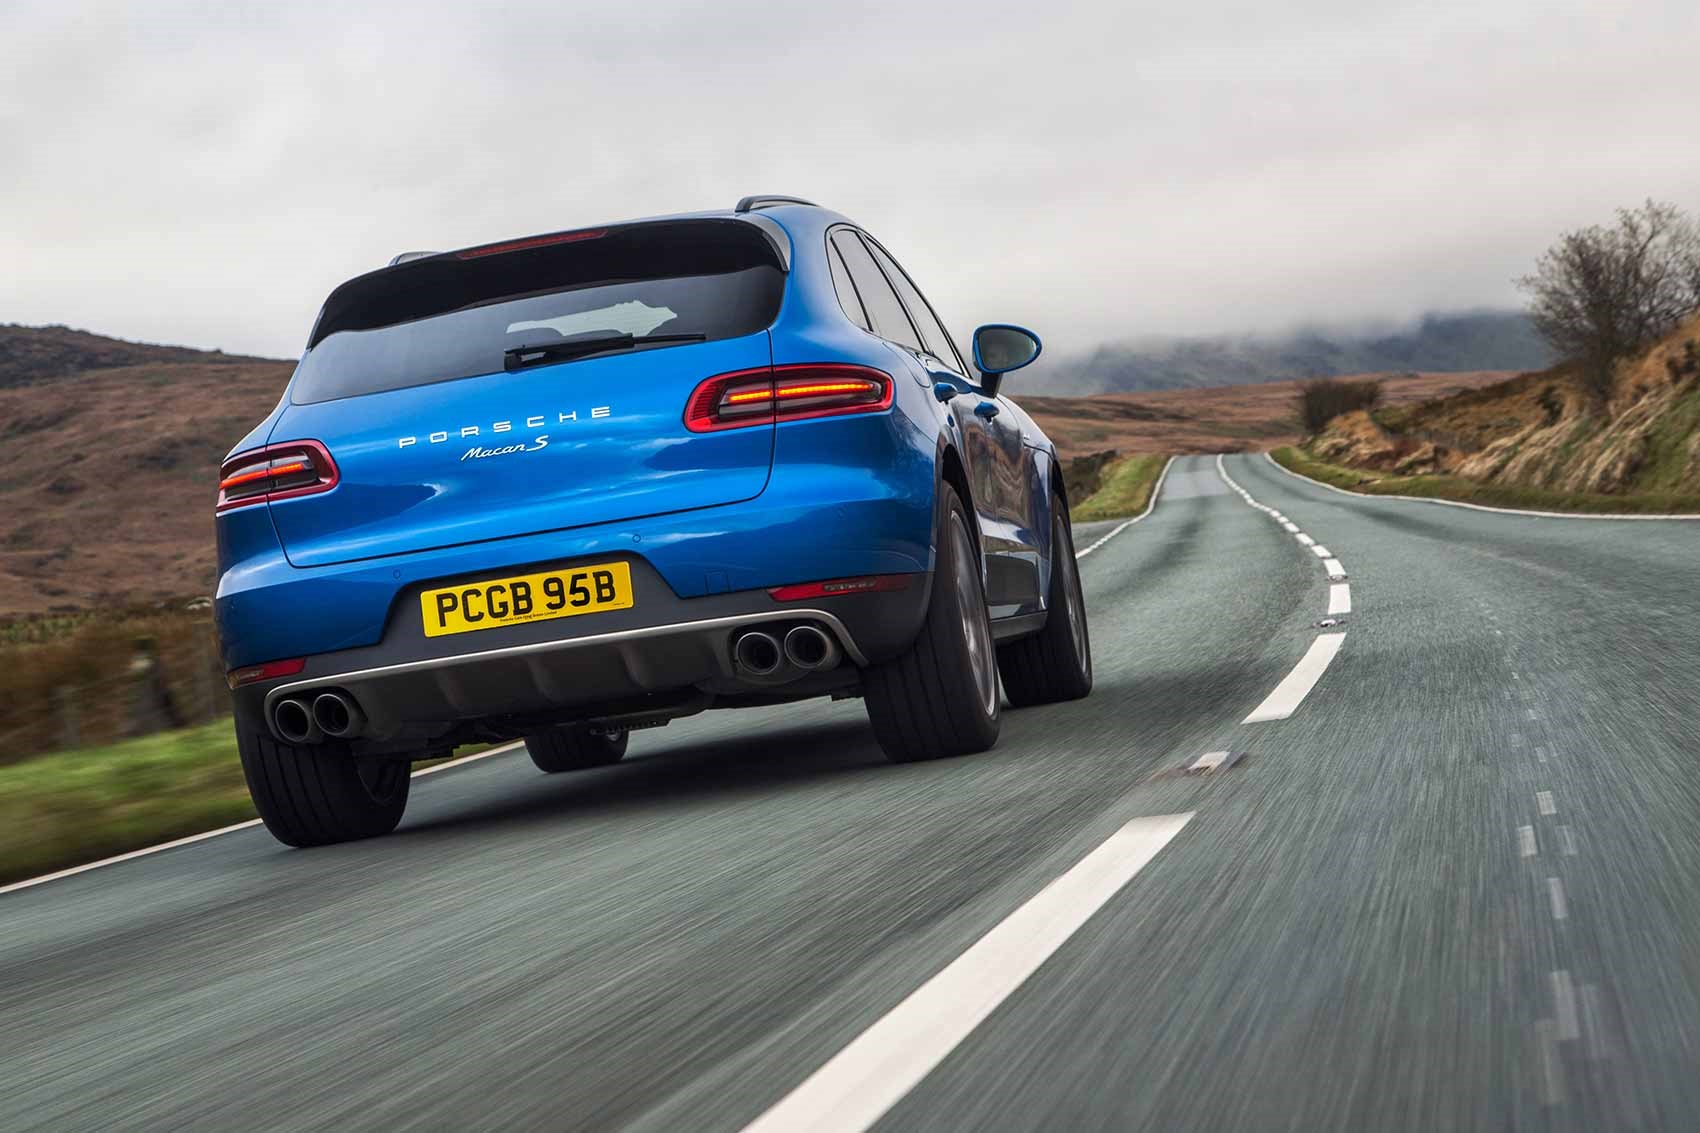 de6626015a01b8 It seems the forecourt future for derv is bleak... Porsche will stop  manufacturing diesel cars like the Macan worldwide